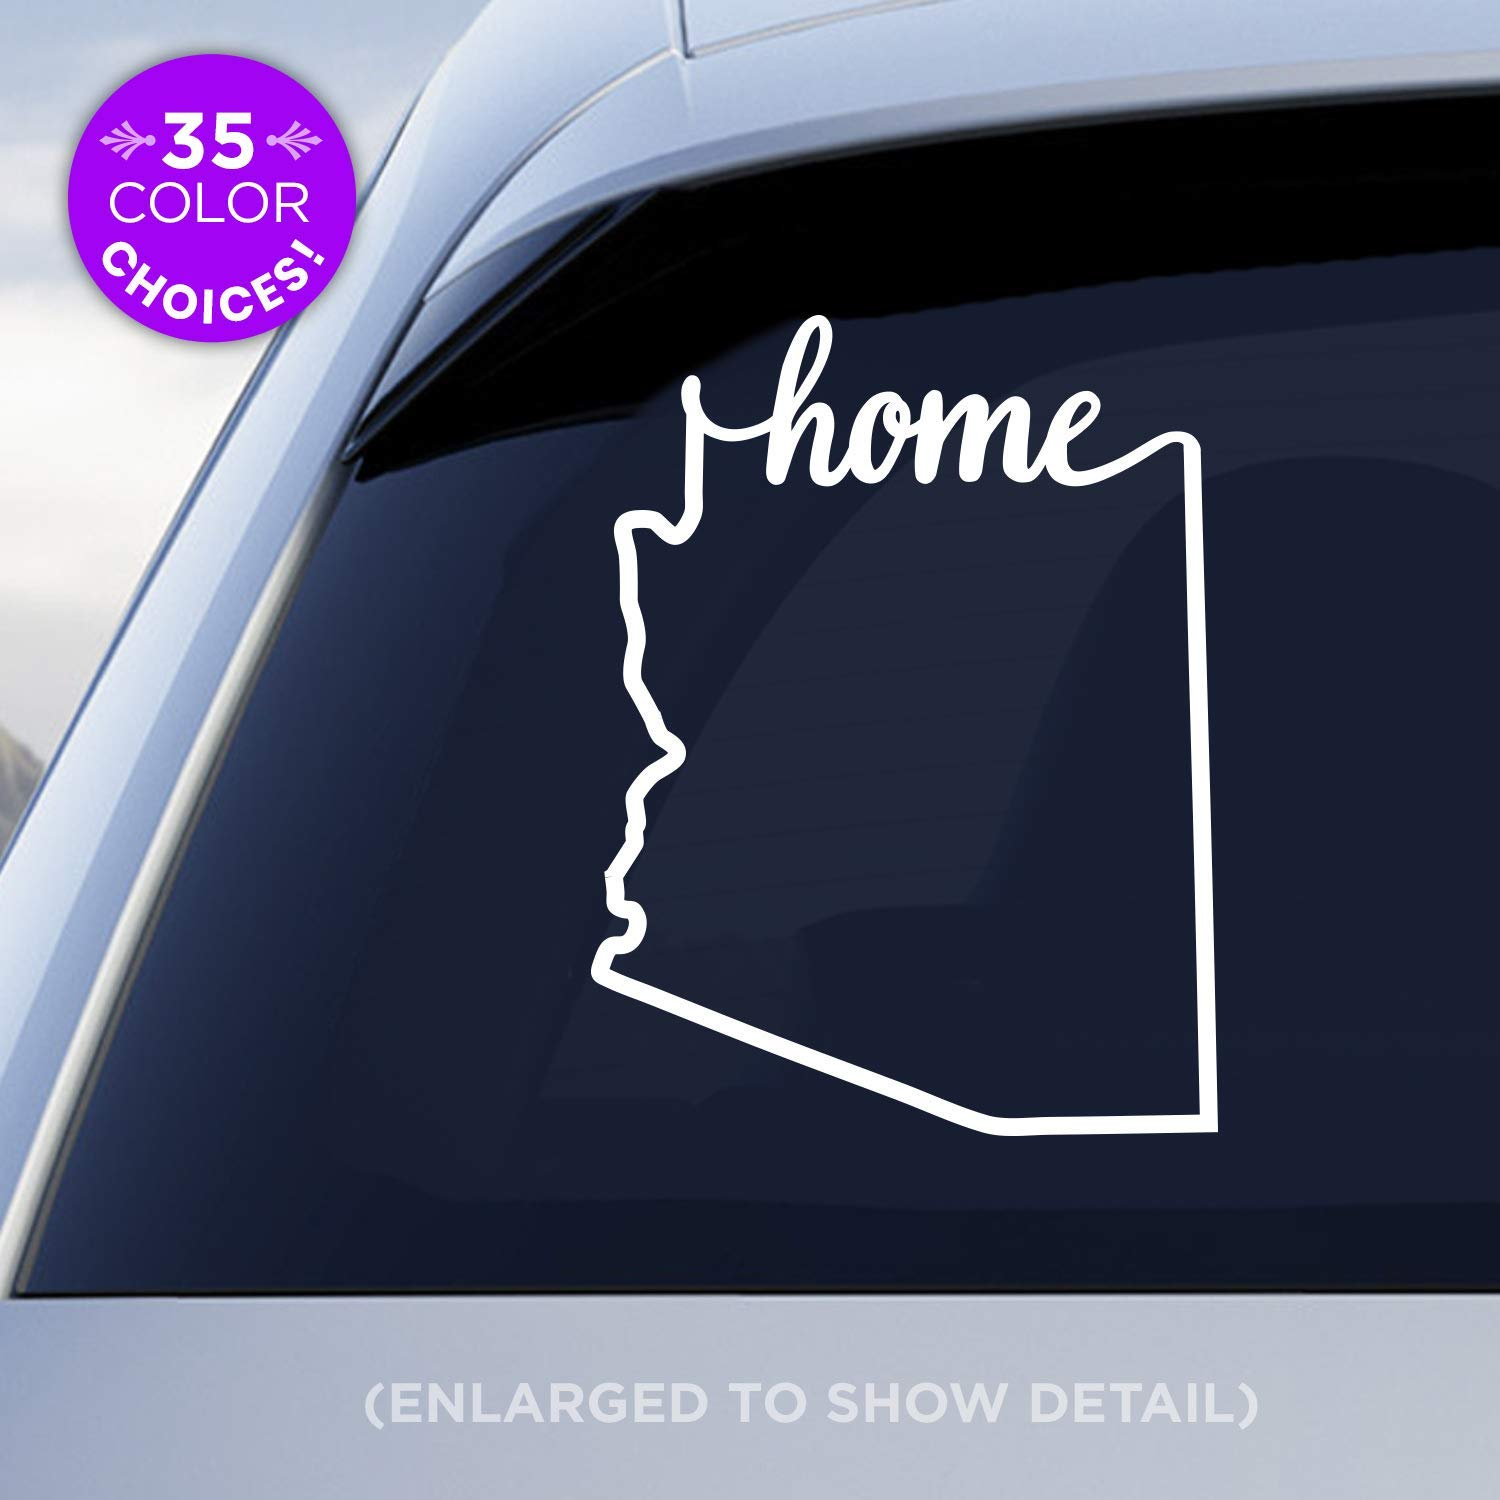 amazon com arizona state home decal az home car vinyl sticker add a heart over phoenix tucson mesa chandler scottsdale yuma tempe made with outdoor vinyl handmade arizona state home decal az home car vinyl sticker add a heart over phoenix tucson mesa chandler scottsdale yuma tempe made with outdoor